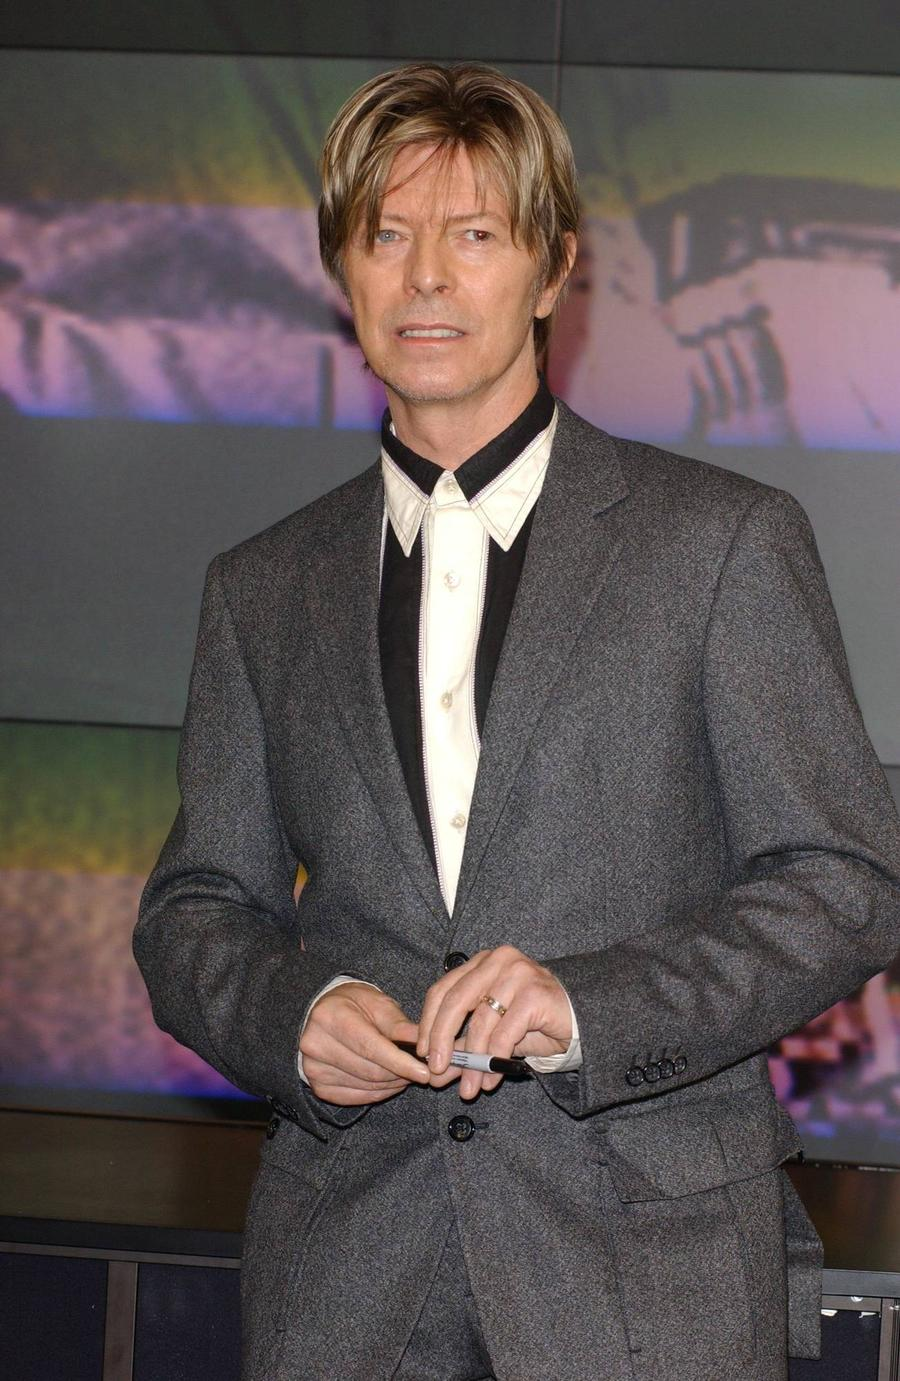 David Bowie Furniture Collection Up For Auction